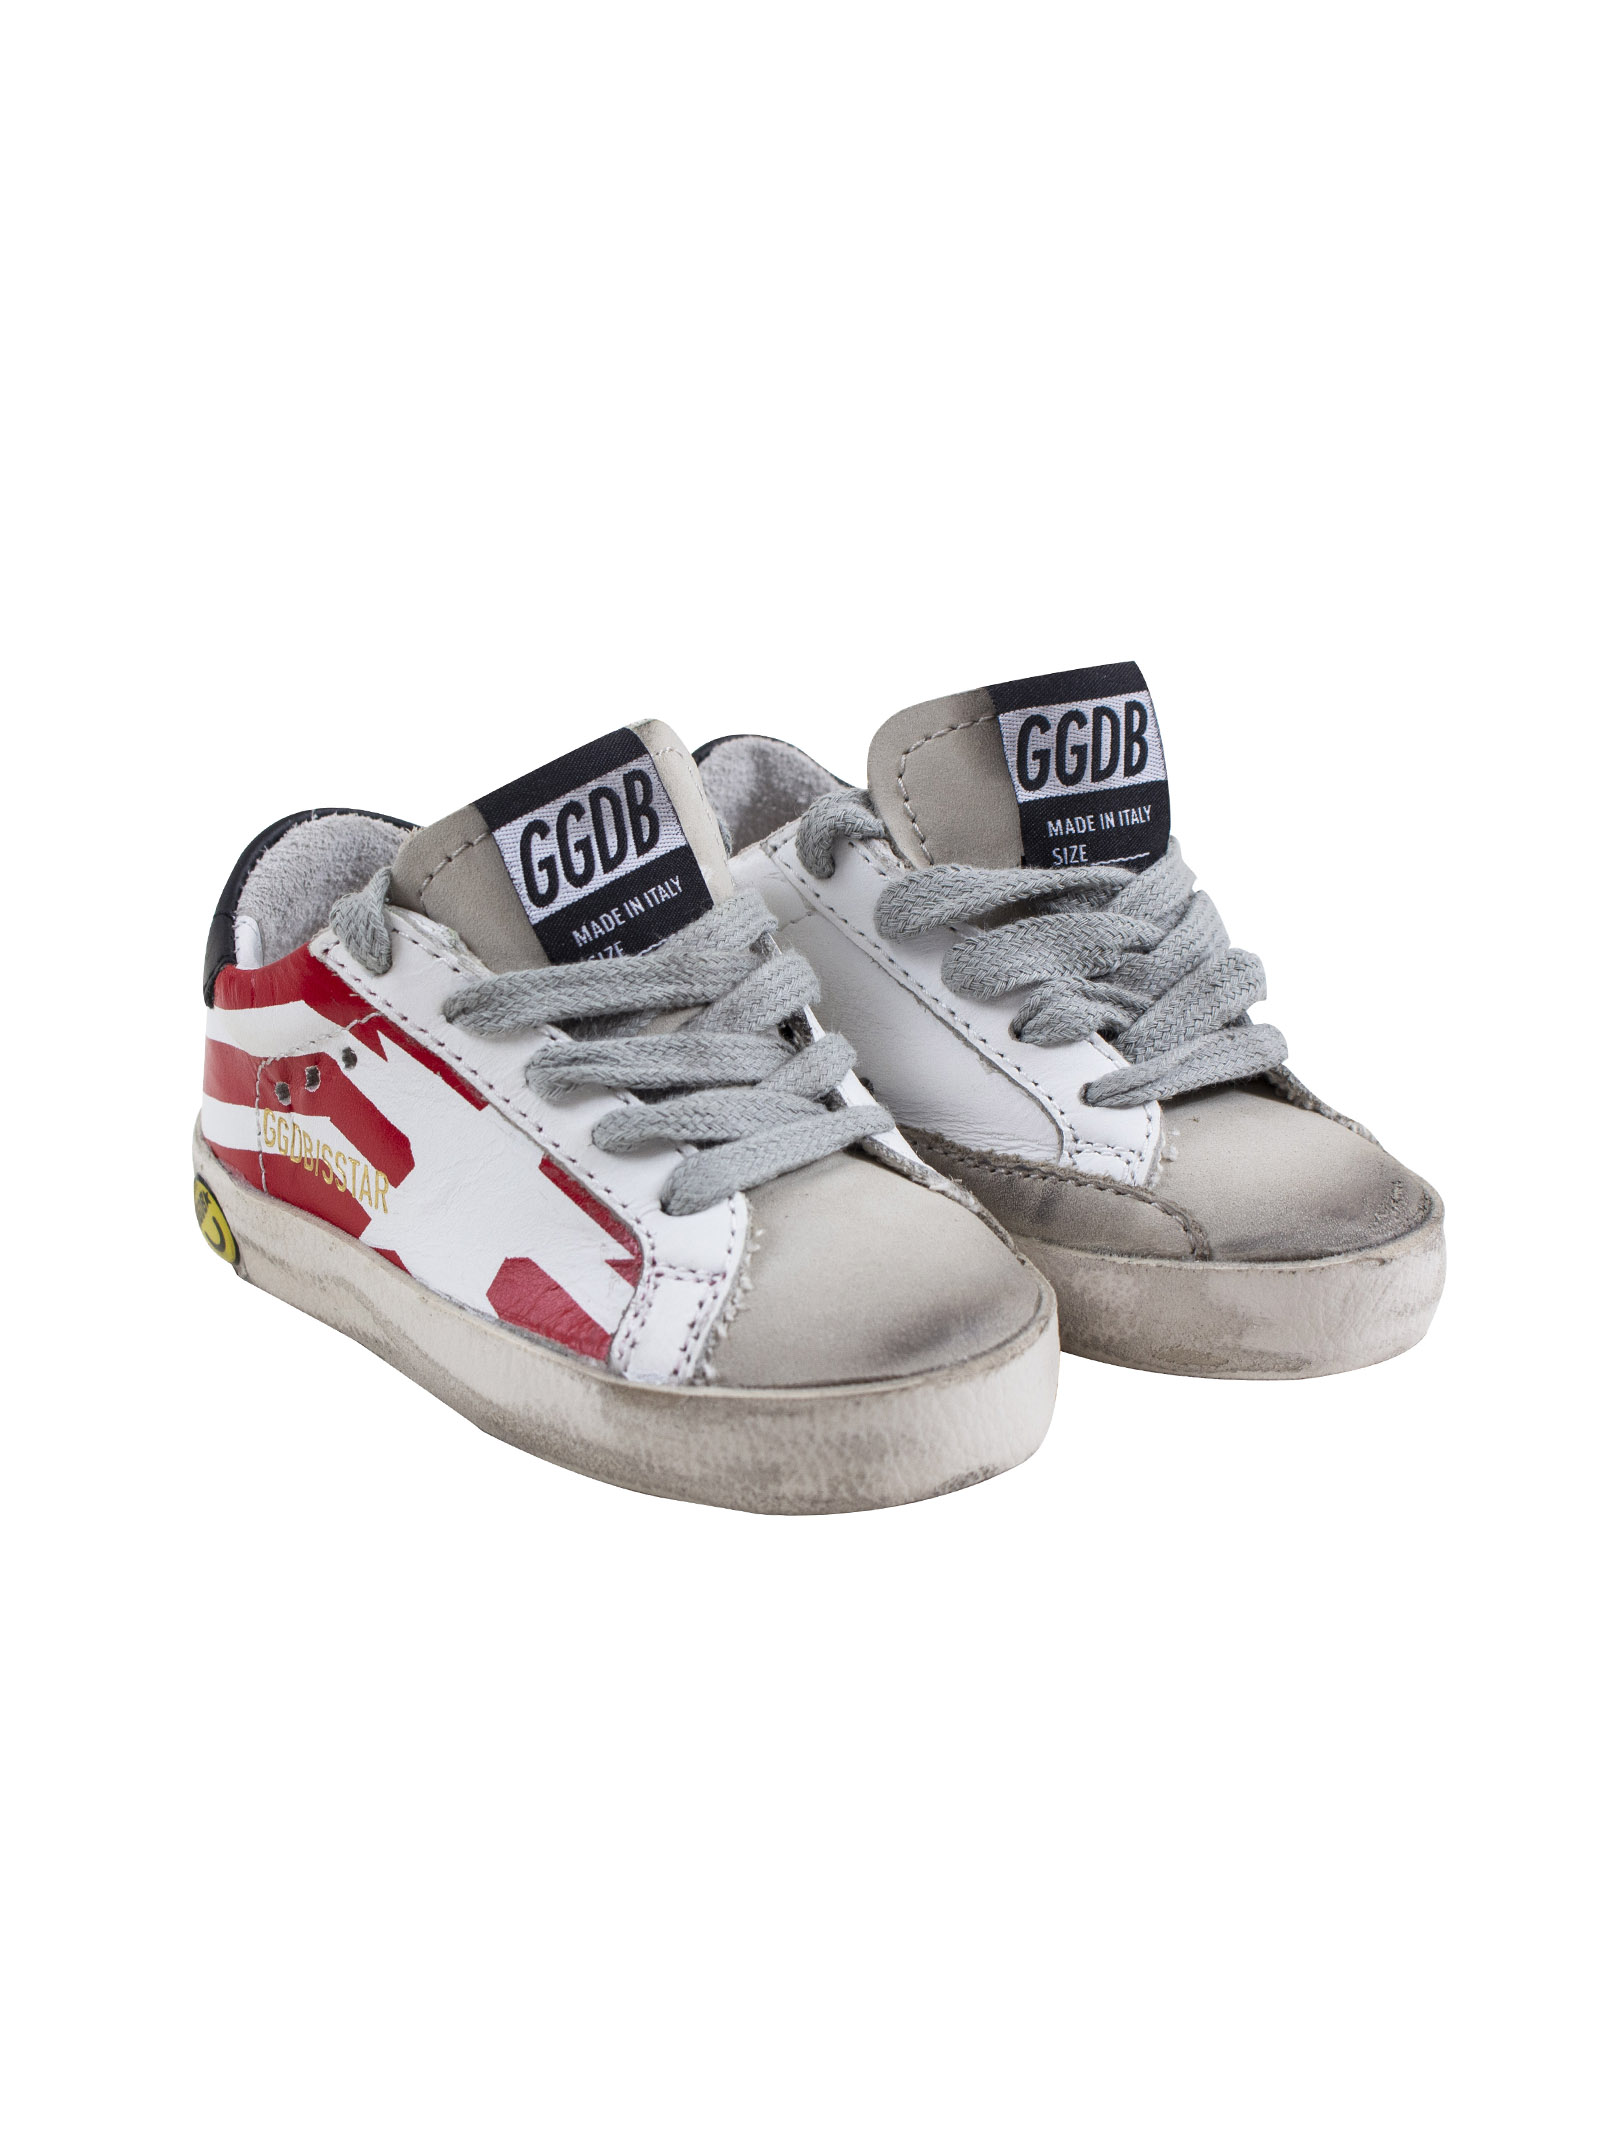 timeless design 62caa a8899 Sneakers Superstar bambino con stampa